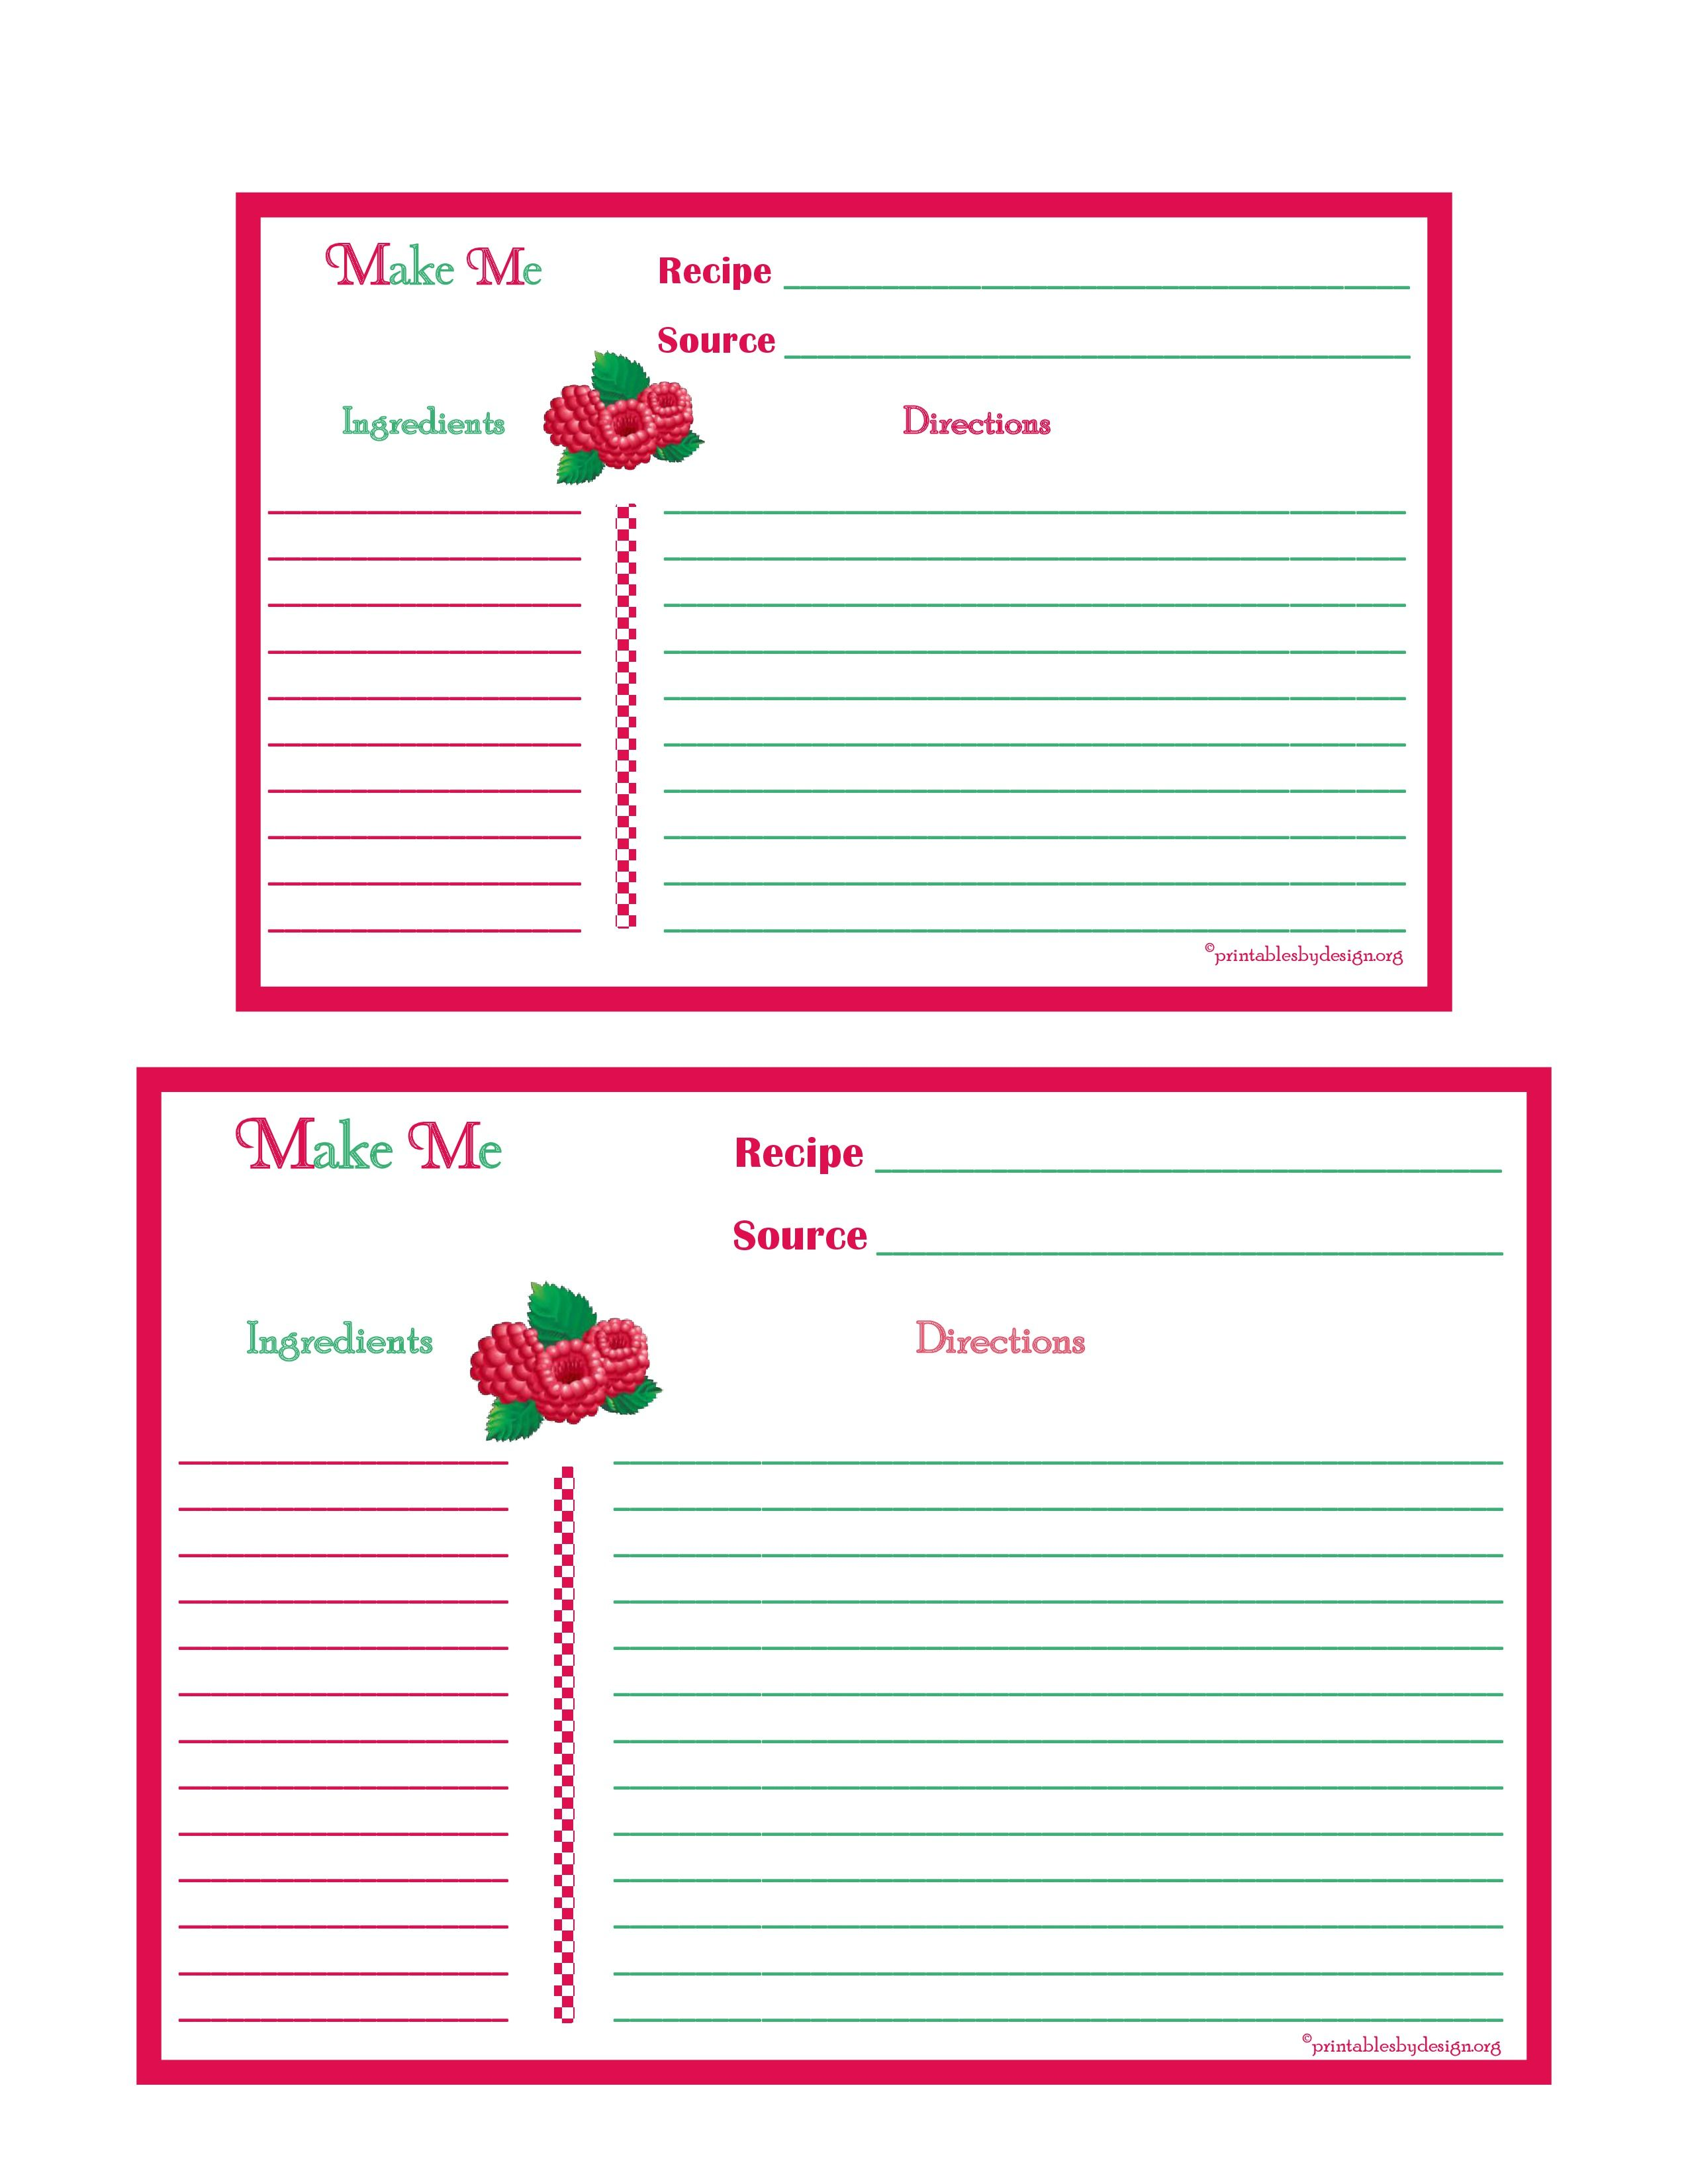 Raspberries Recipe Card 4x6 5x7 Page Recipe Cards Template Recipe Cards Photo Card Template